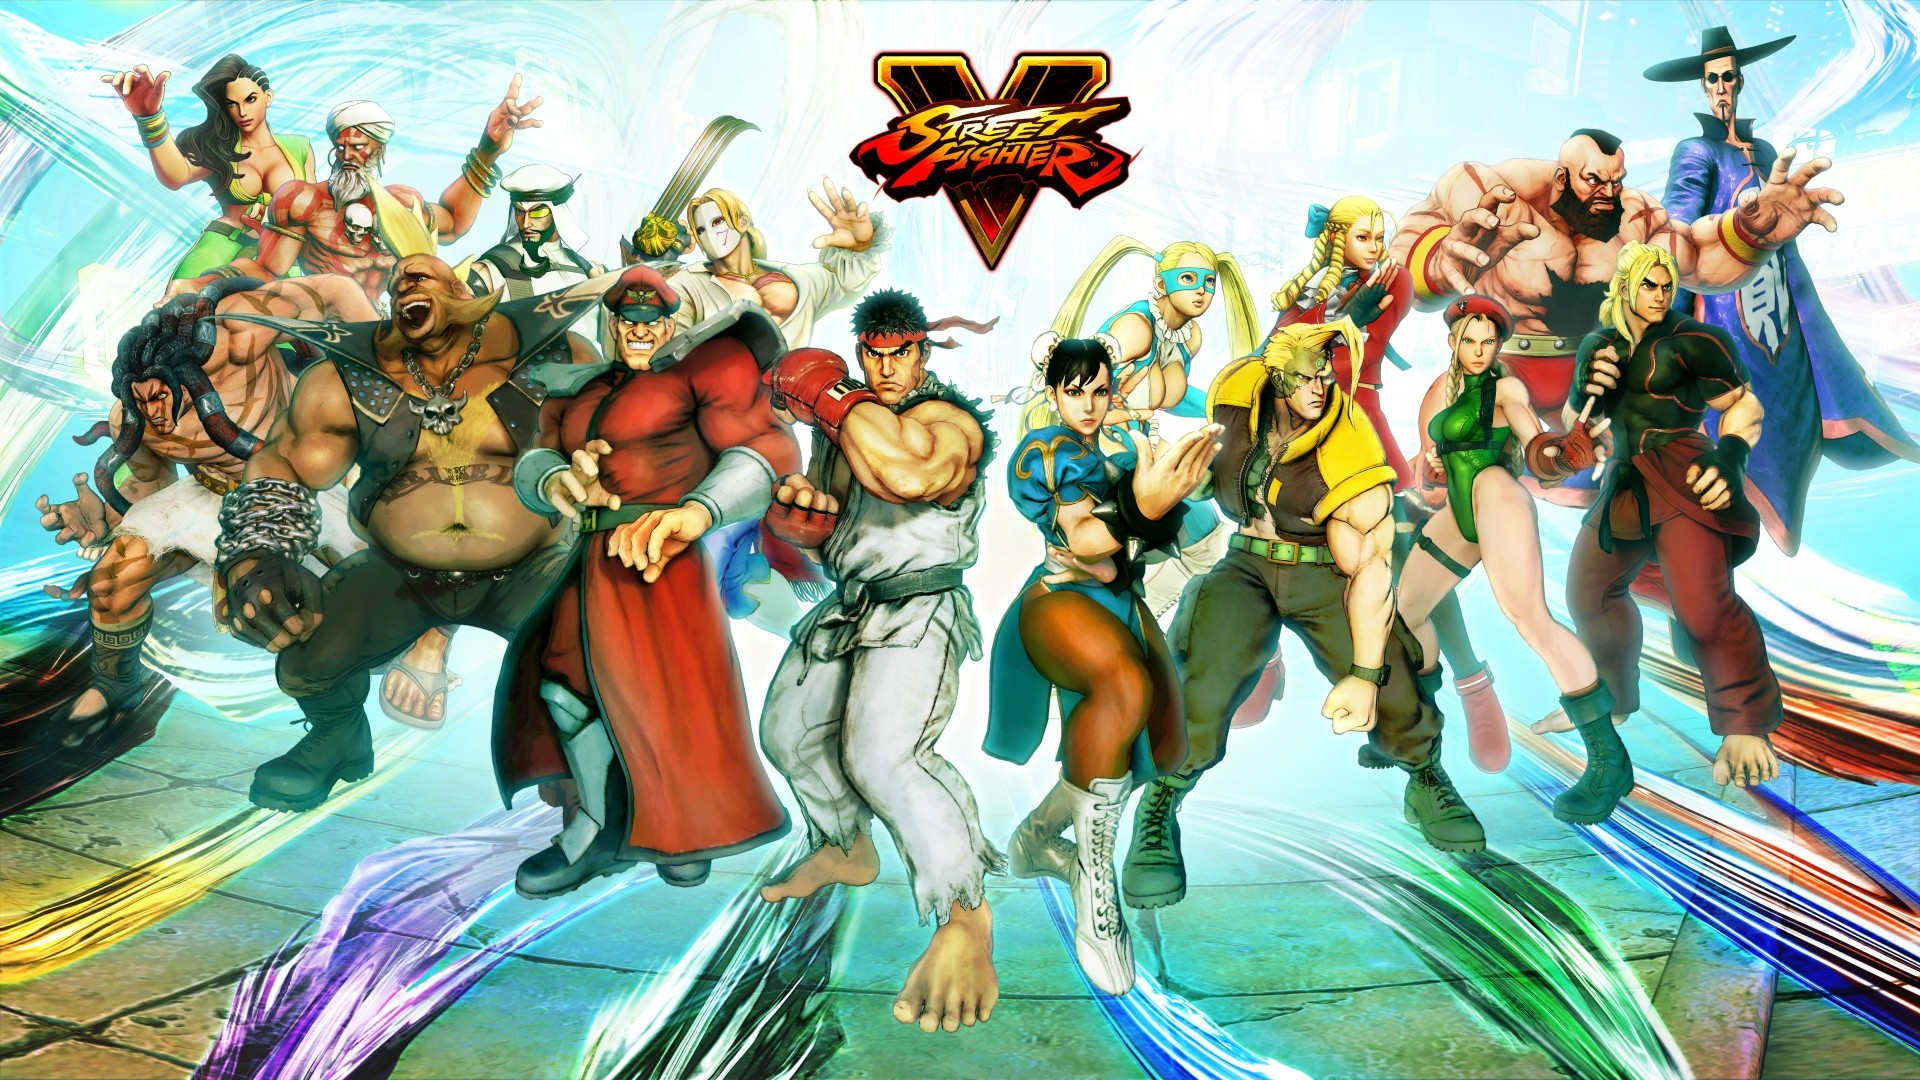 Street Fighter 5 Wallpapers (59+ images)